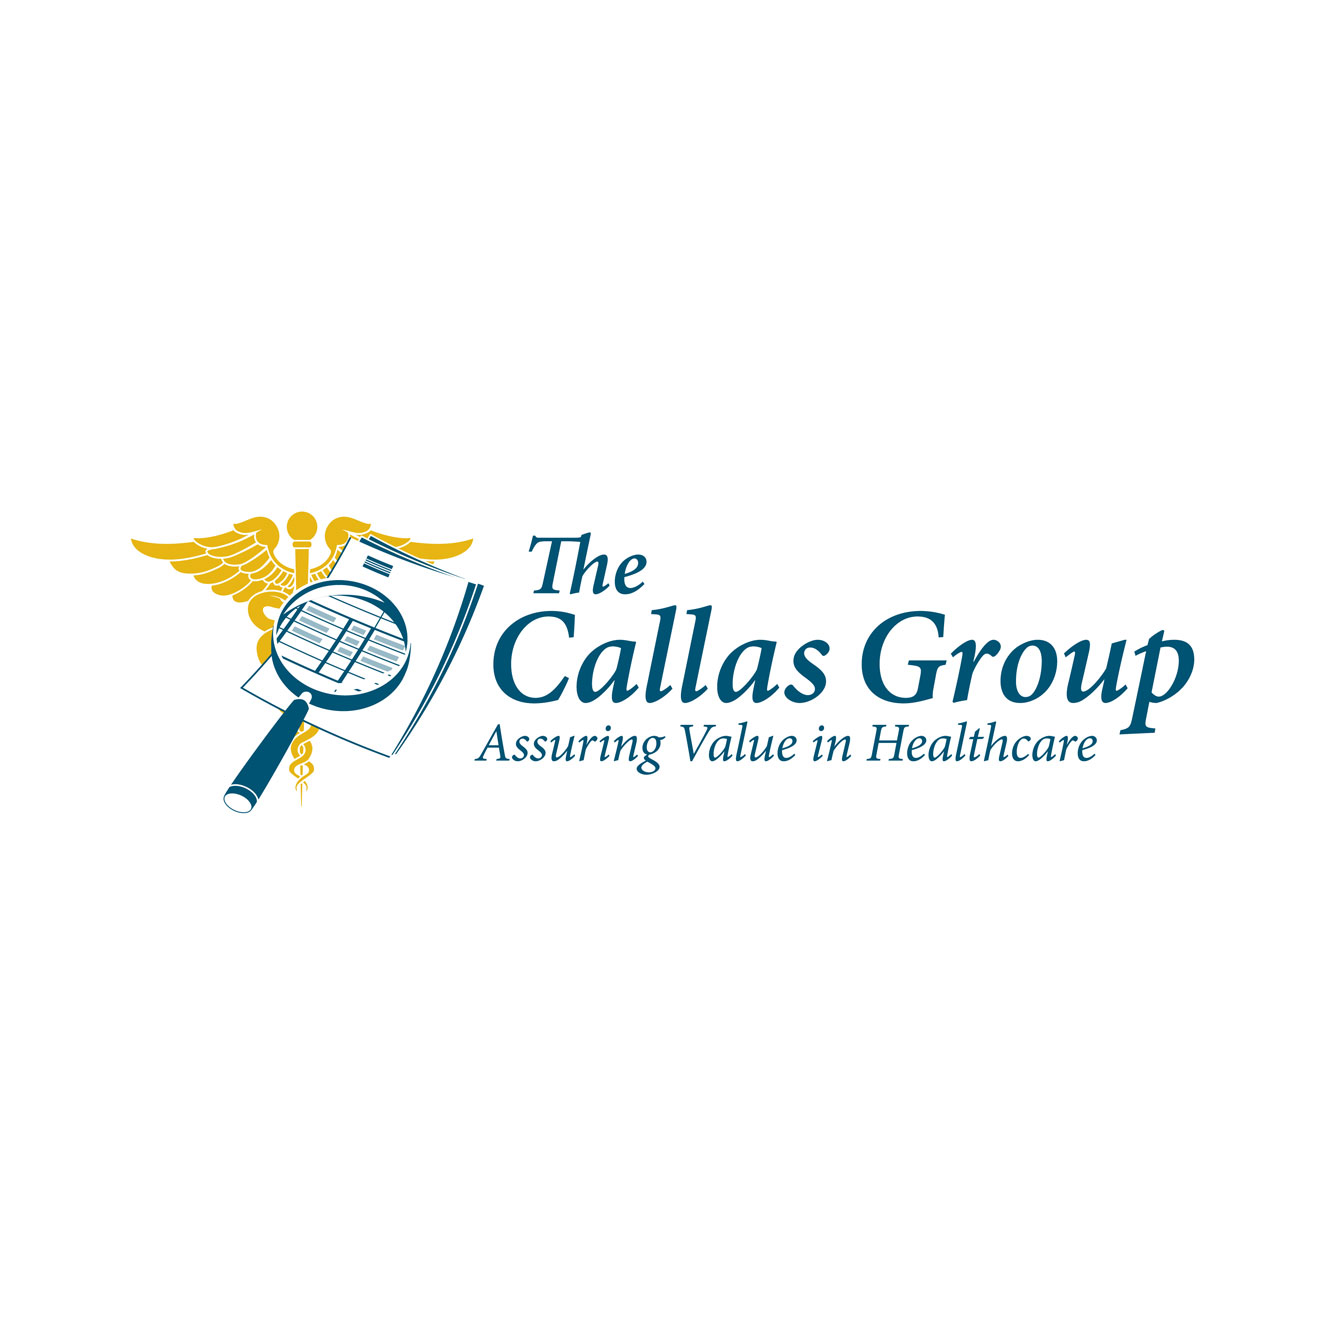 The Callas Group logo design by Ashley Lewis